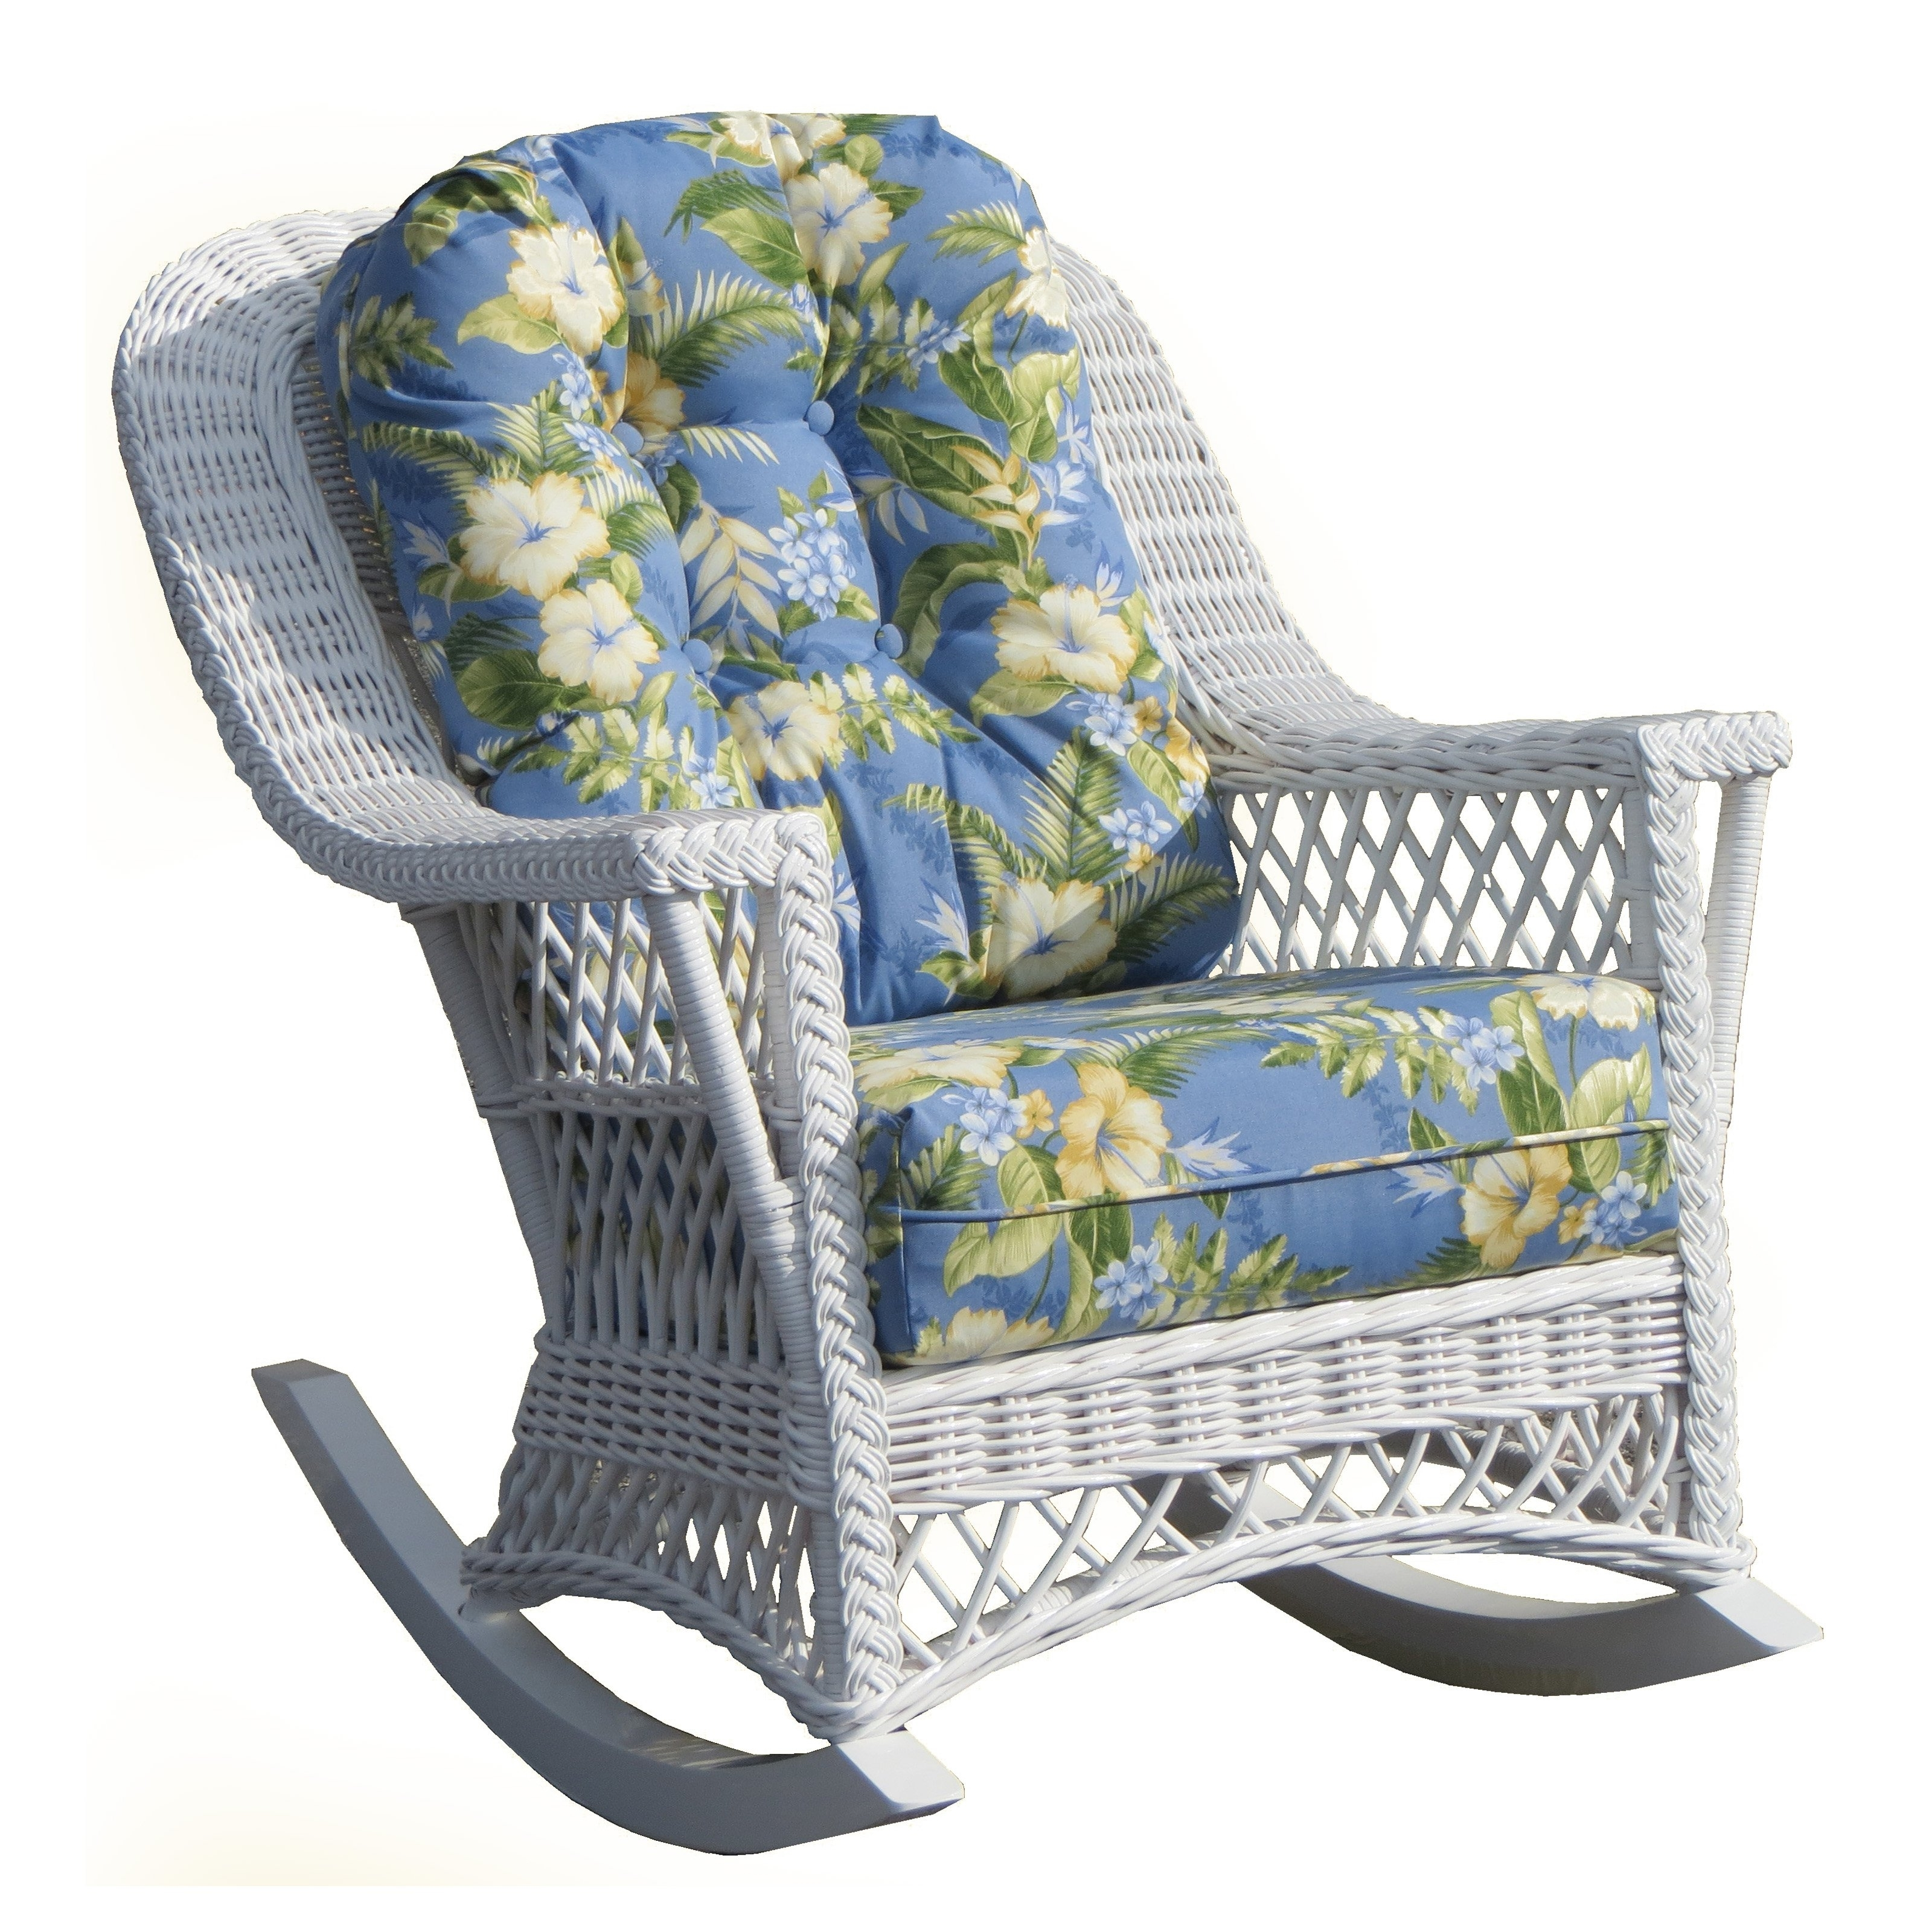 Used Patio Rocking Chairs For Most Up To Date White Wicker Rocking Chairs Porch Martha Stewart Chair Indoor For (View 9 of 15)